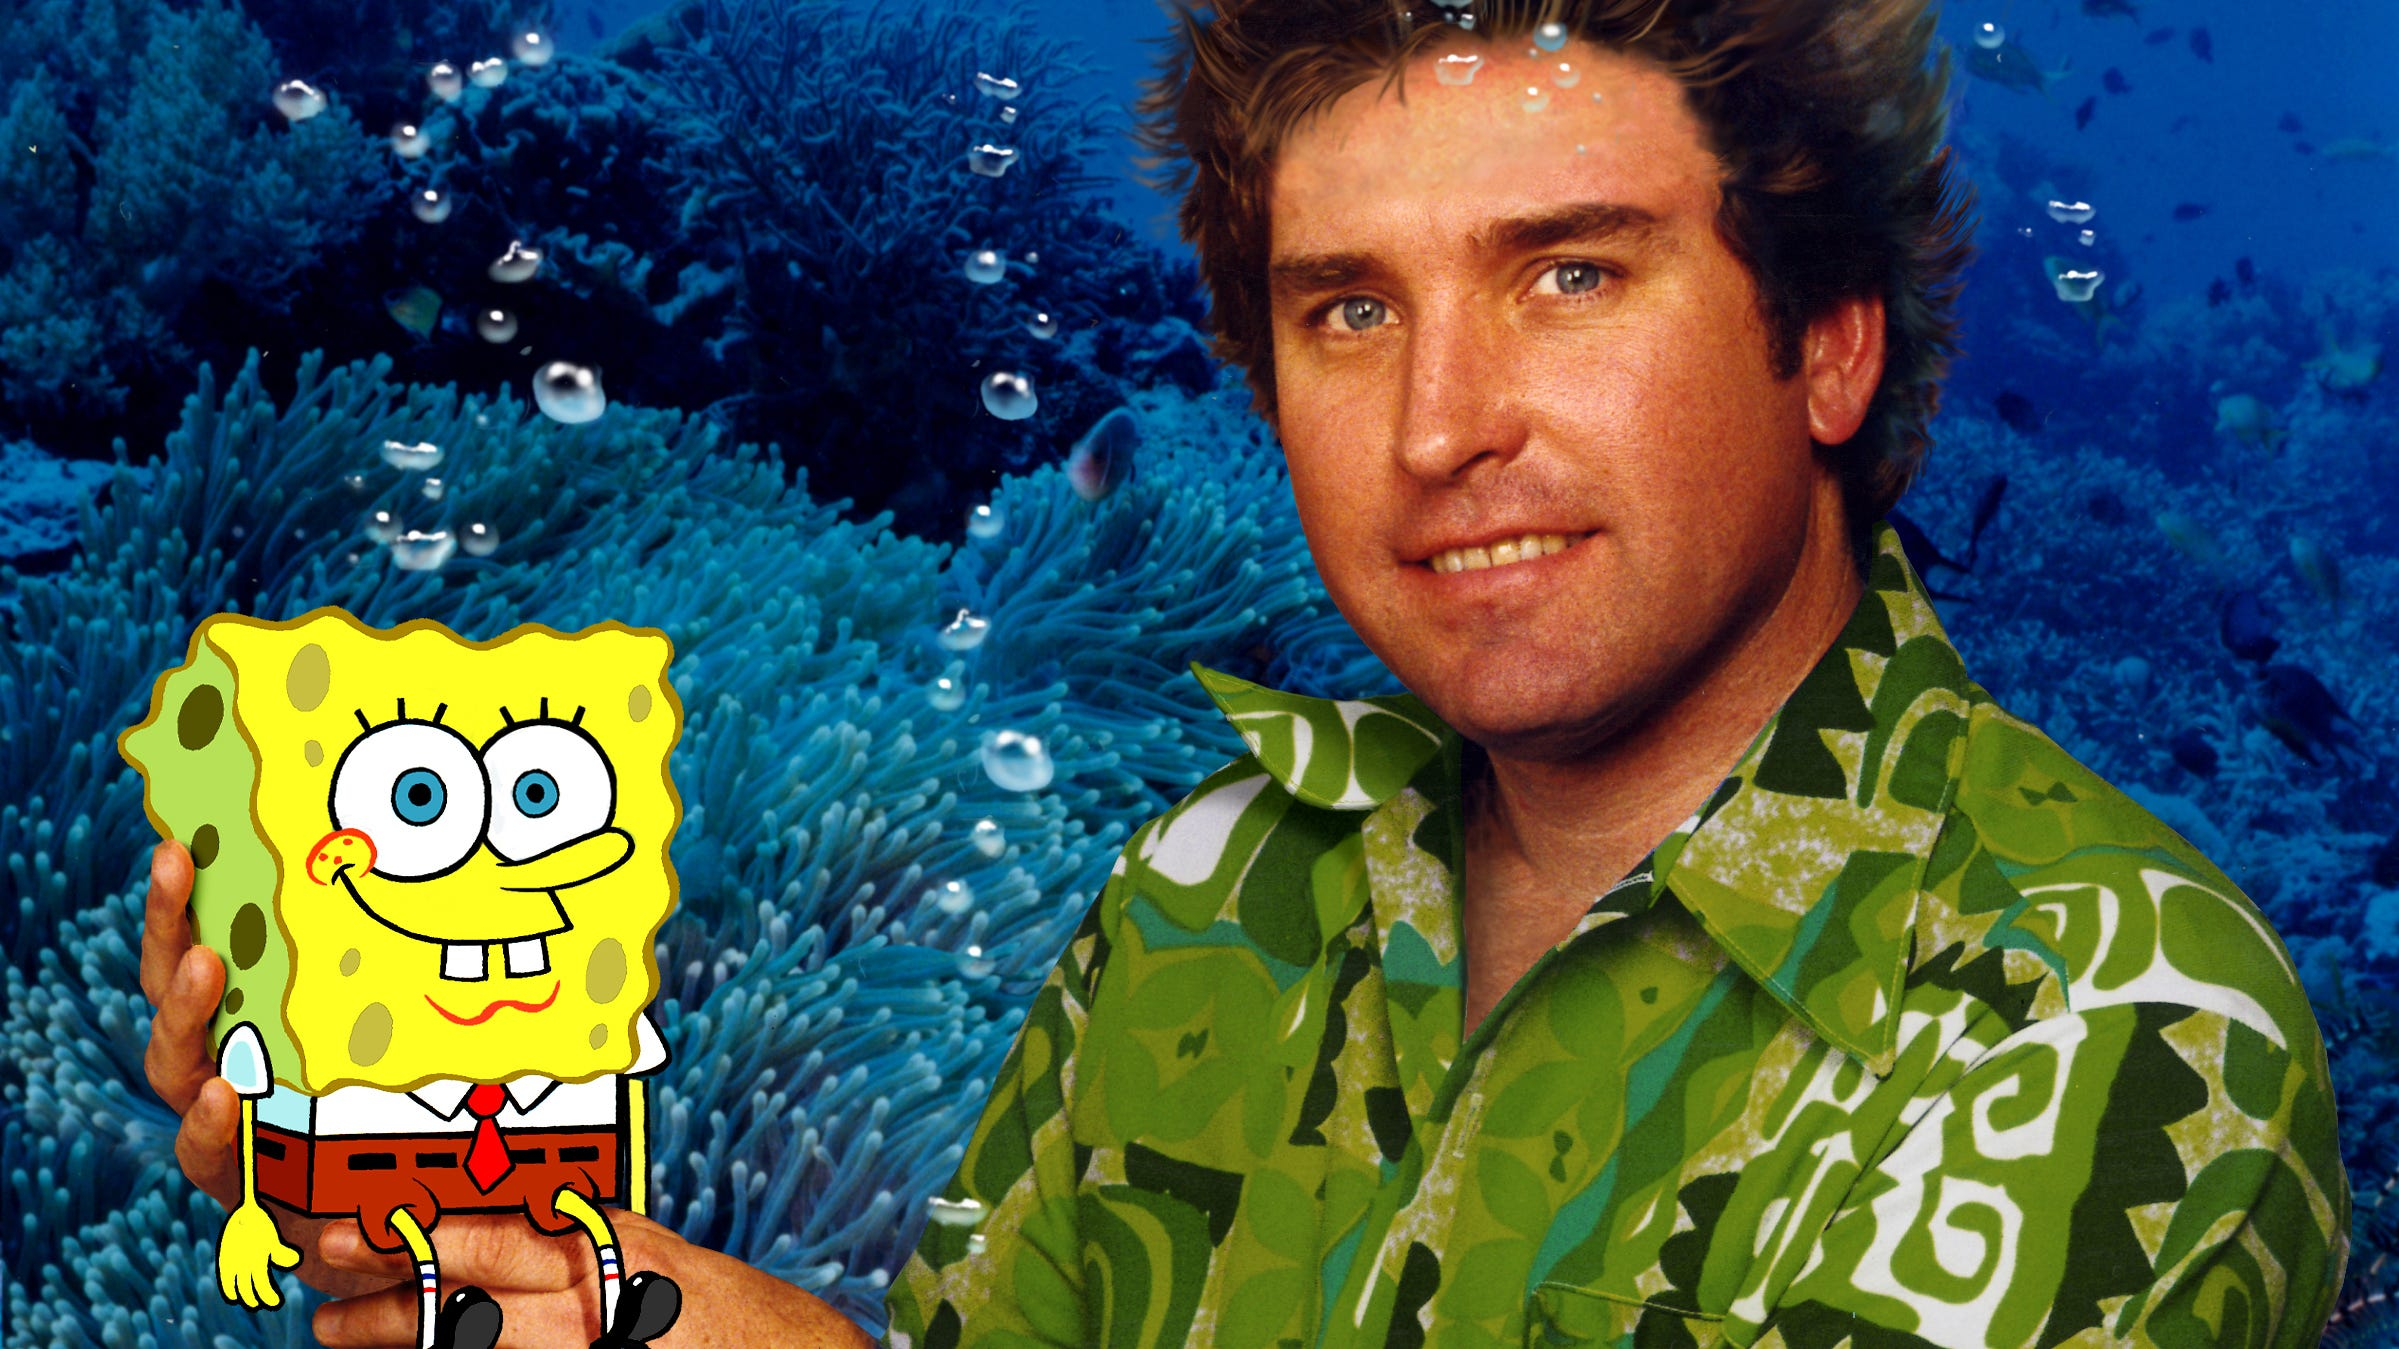 'SpongeBob SquarePants' creator Stephen Hillenburg dies at 57 from ALS